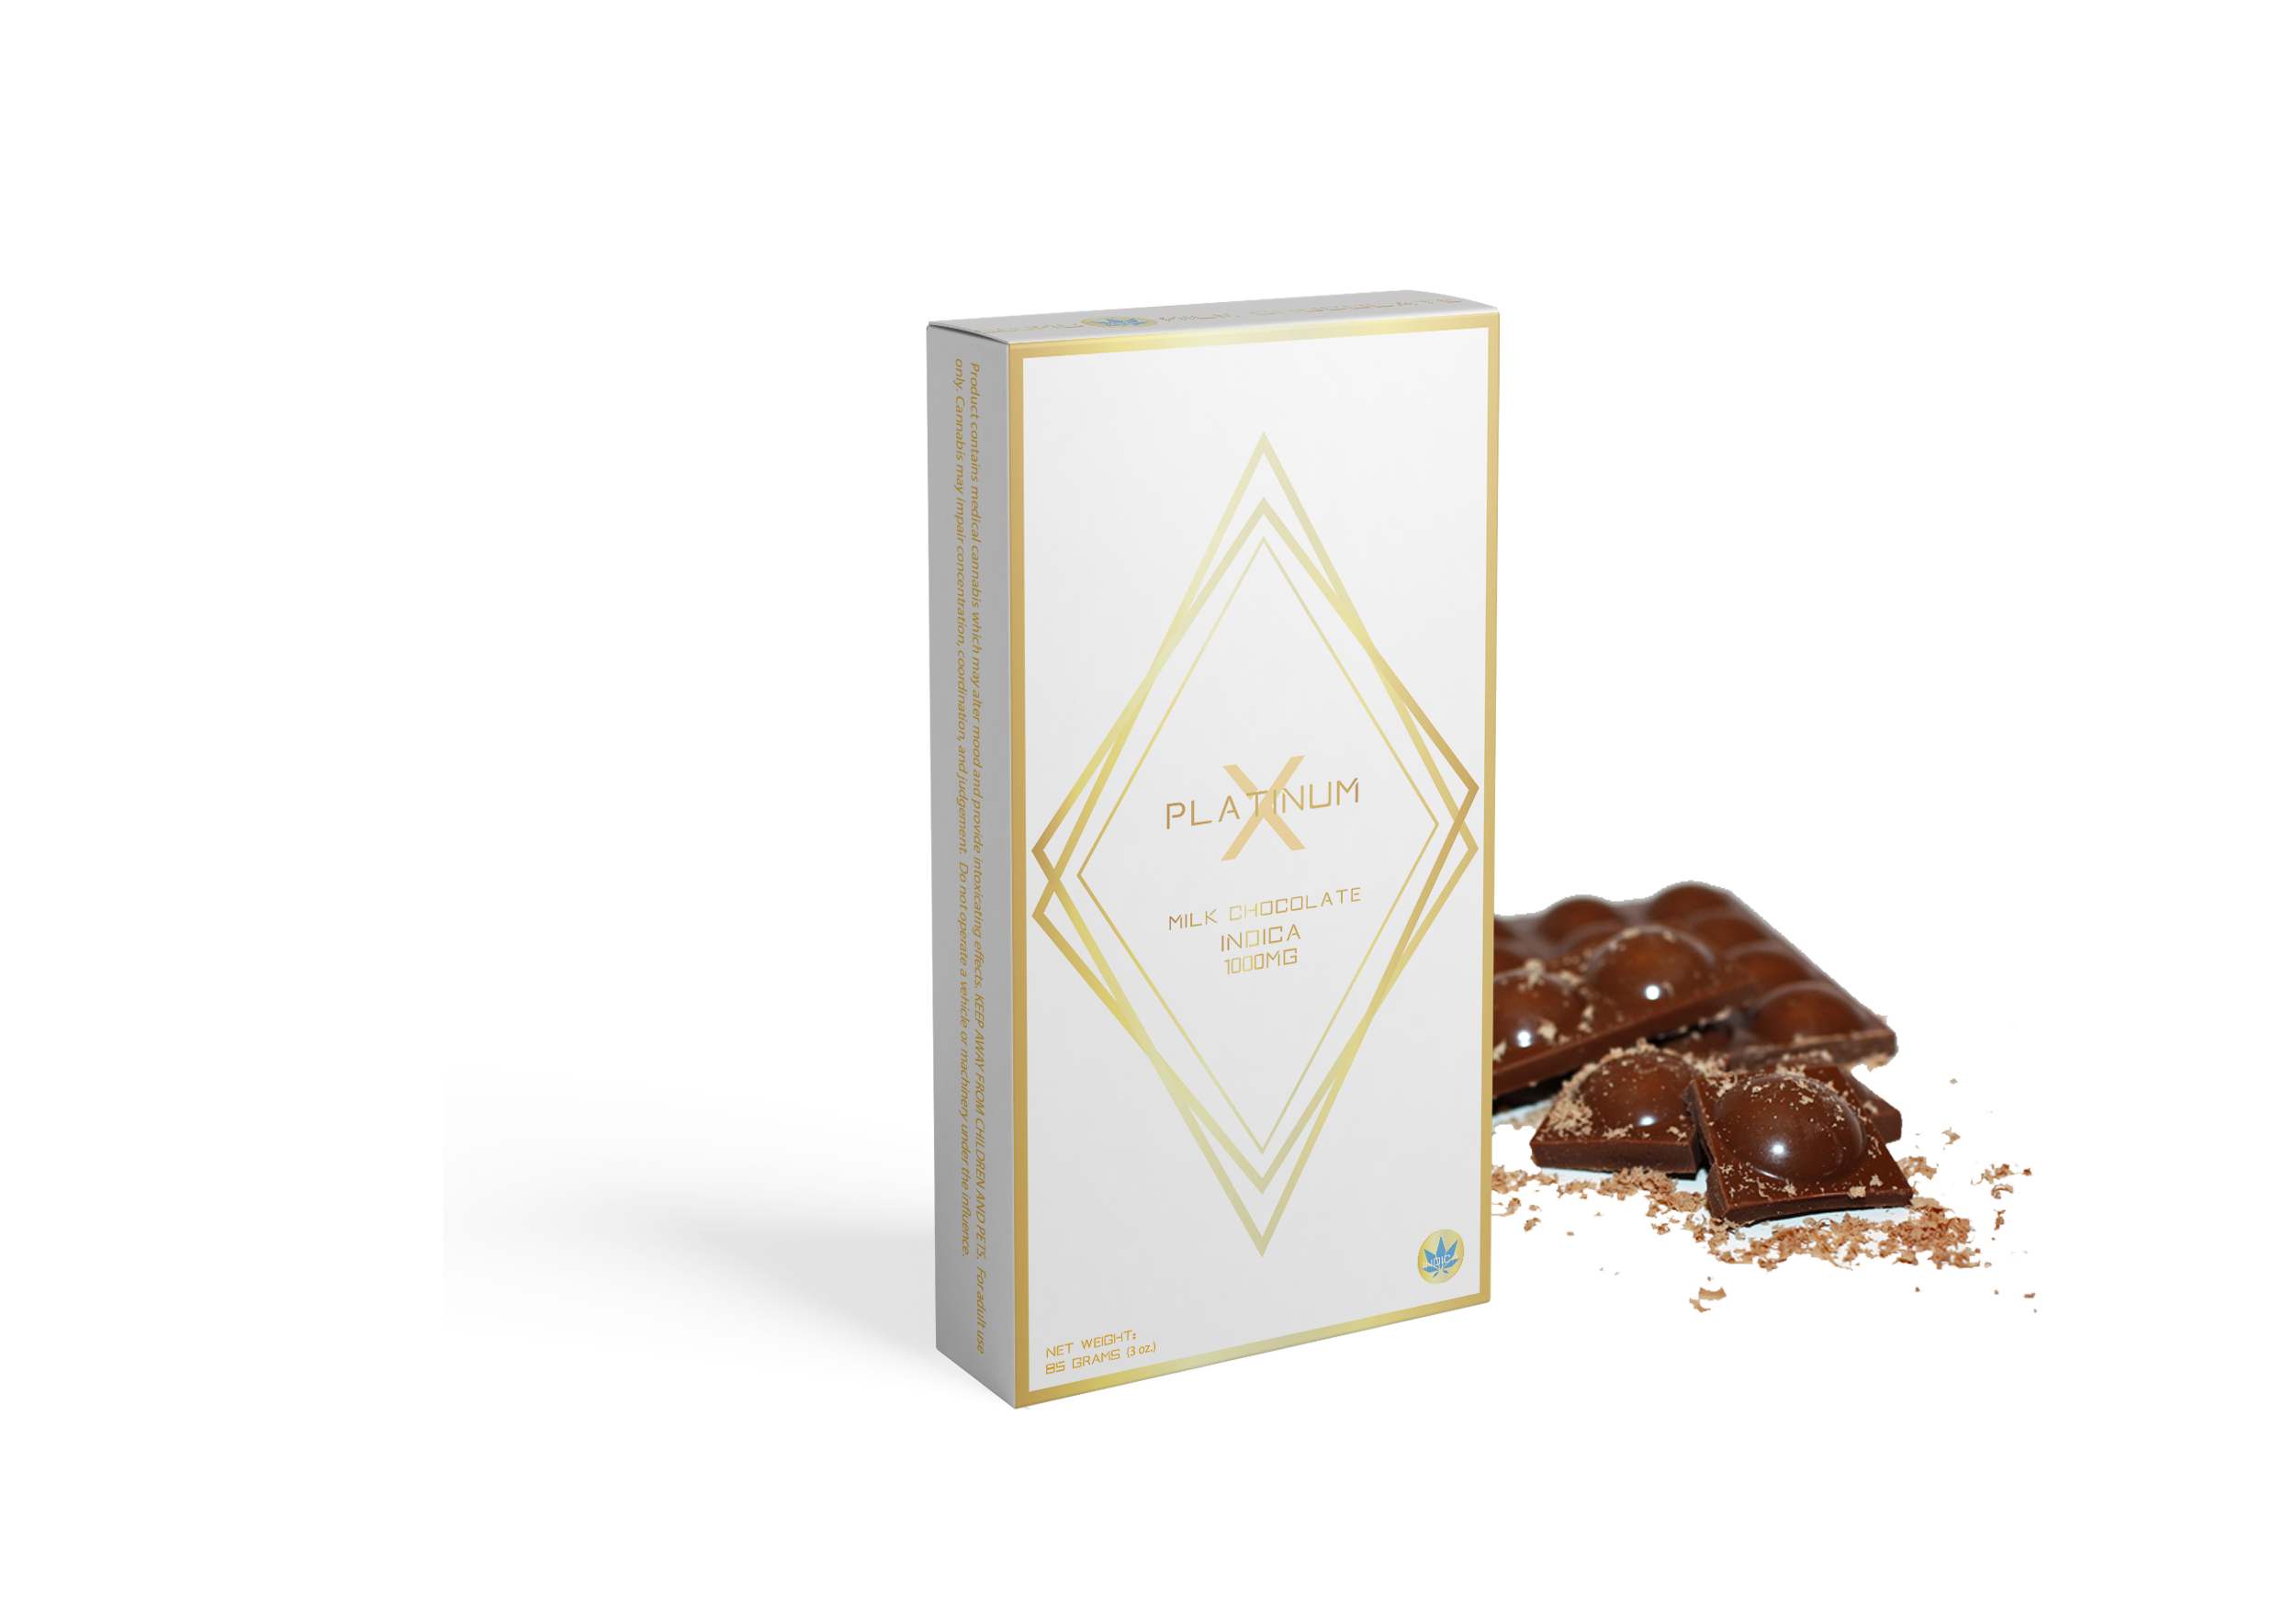 MILK CHOCOLATE 1000MG INDICA- PlatinumX